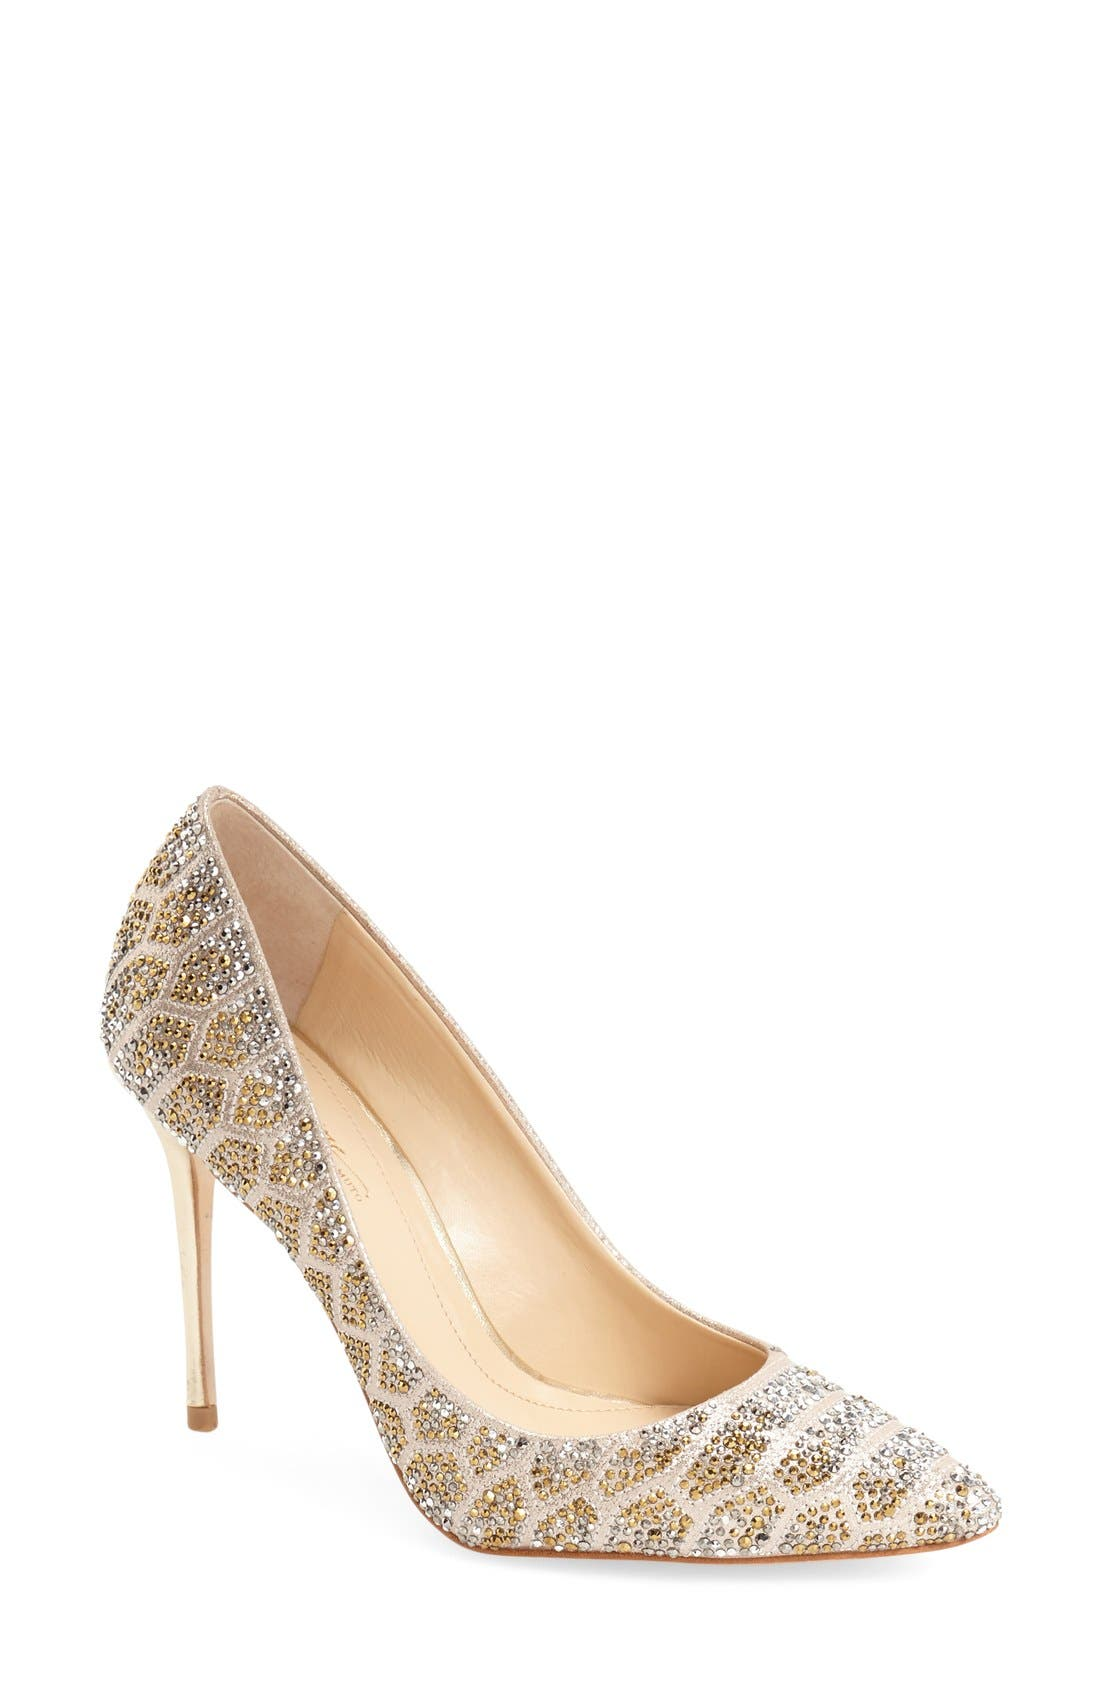 Imagine Vince Camuto 'Olivier' Pointy Toe Pump,                             Main thumbnail 1, color,                             Soft Gold